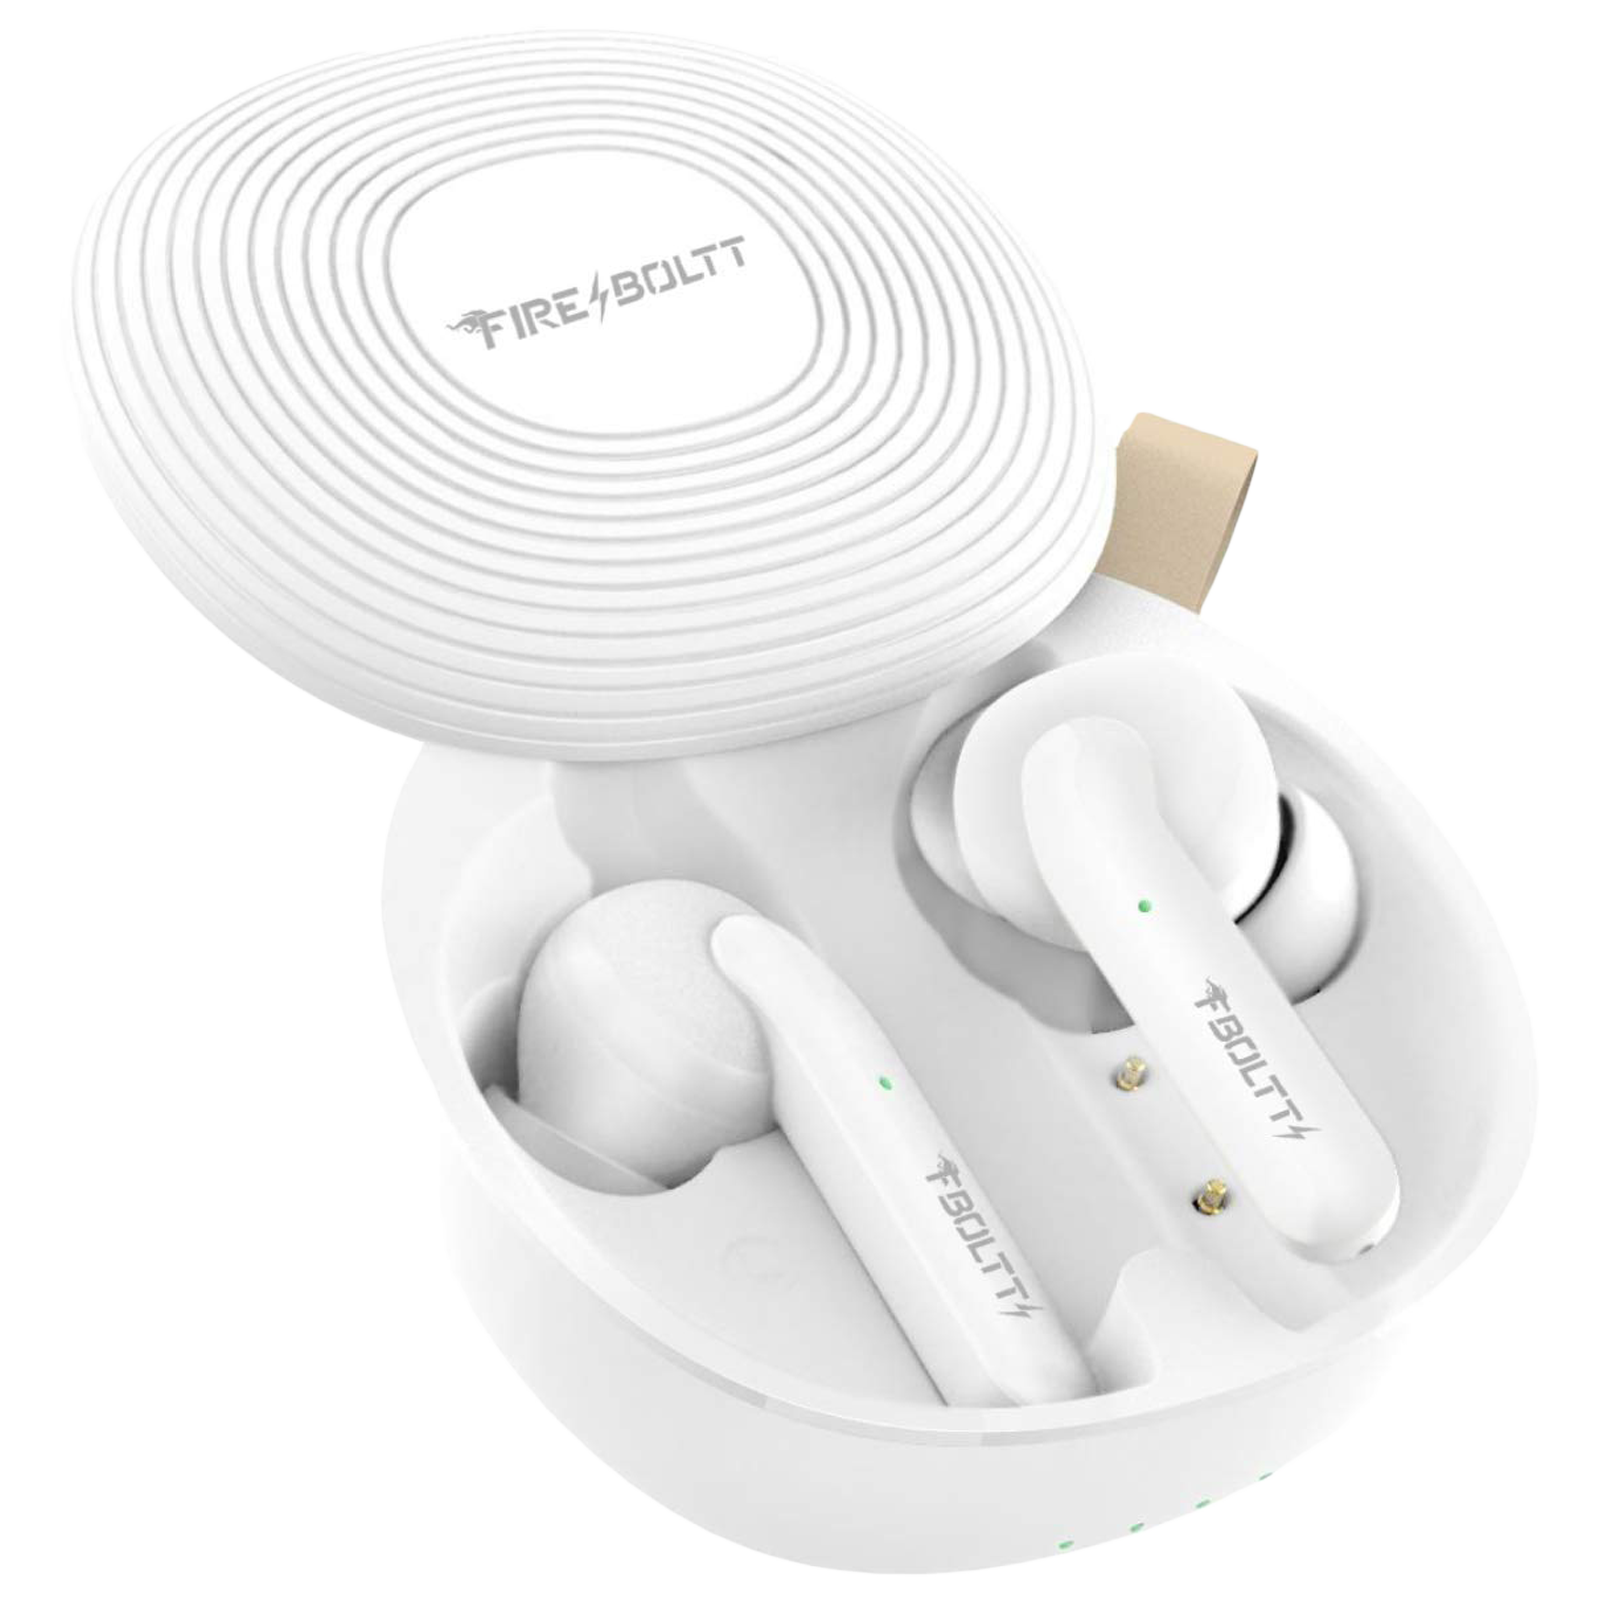 Fire-Boltt BE1101 In-Ear Noise Isolation Truly Wireless Earbuds with Mic (Bluetooth 5.0, Voice Assistant Supported, BE1100, White)_1